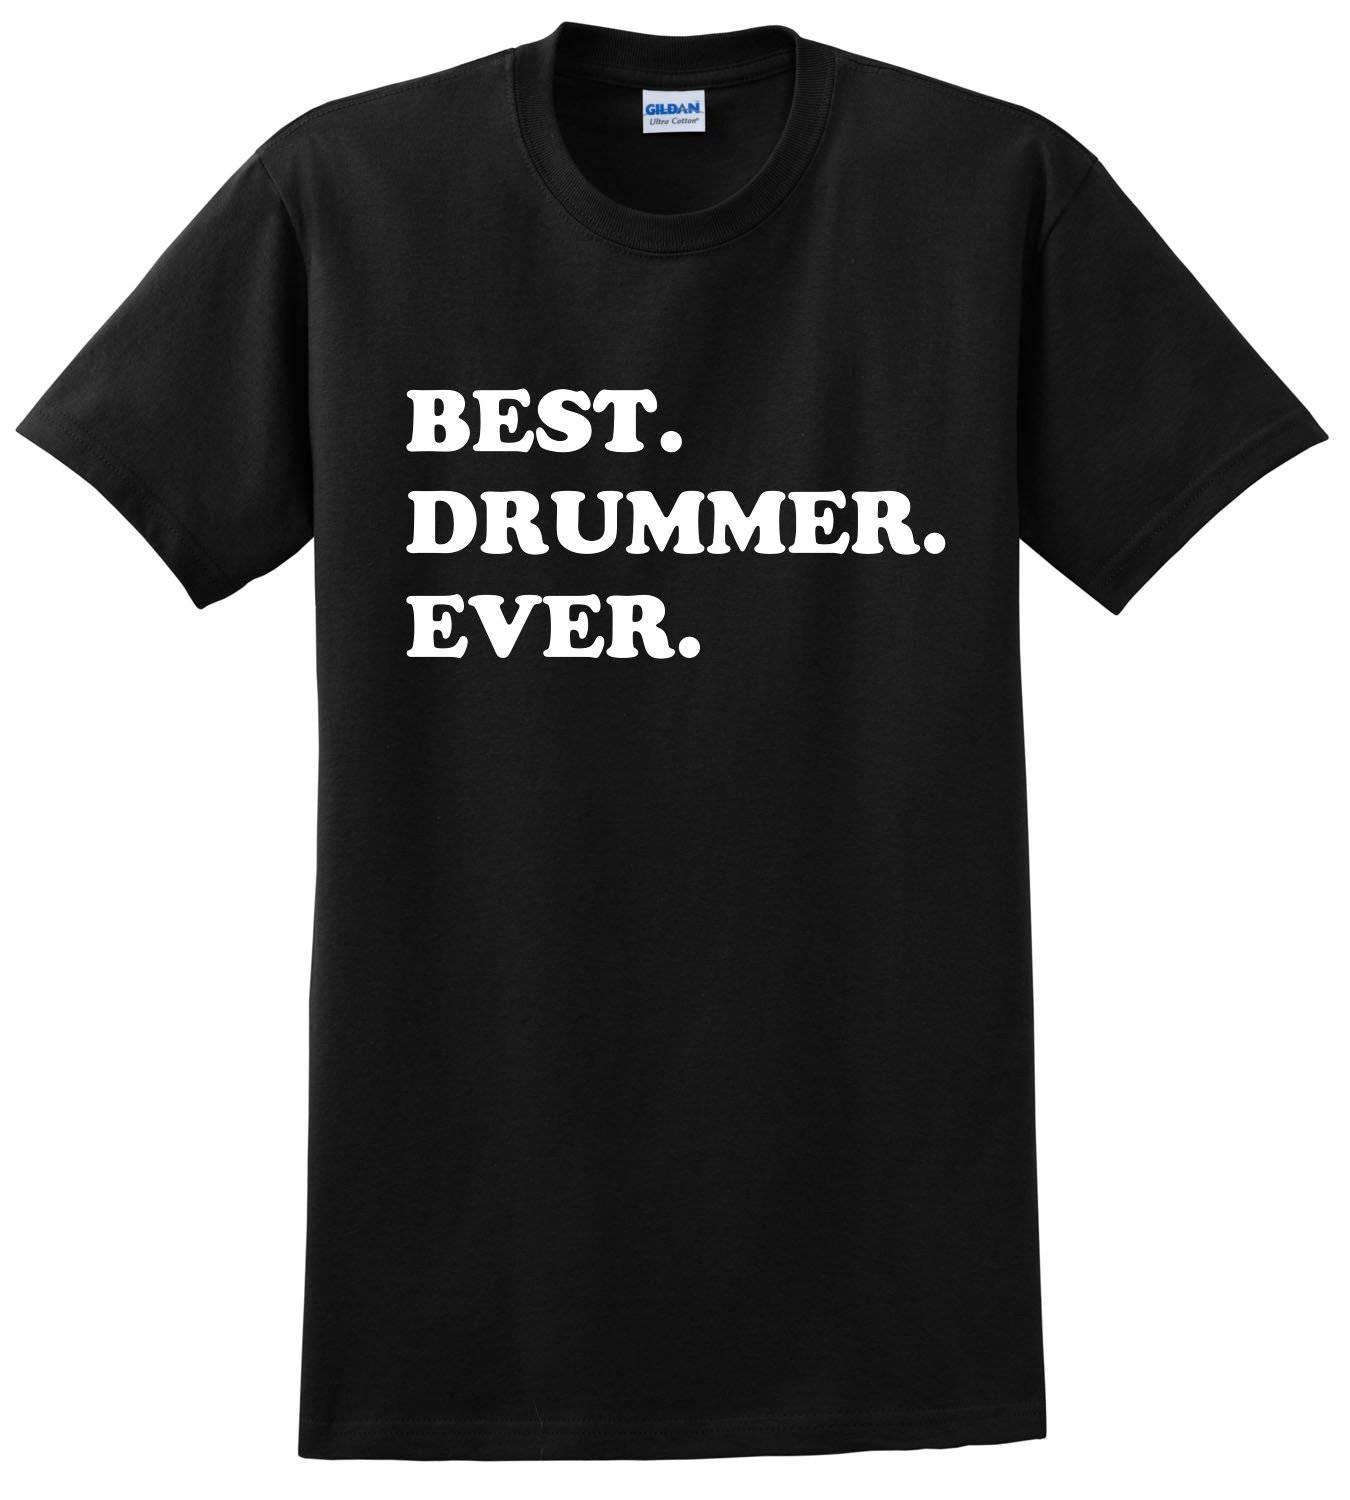 Best Drummer Ever Shirt Drummer Gift for Drummers Percussion New 2018 Hot  Summer Casual T Shirt Printing